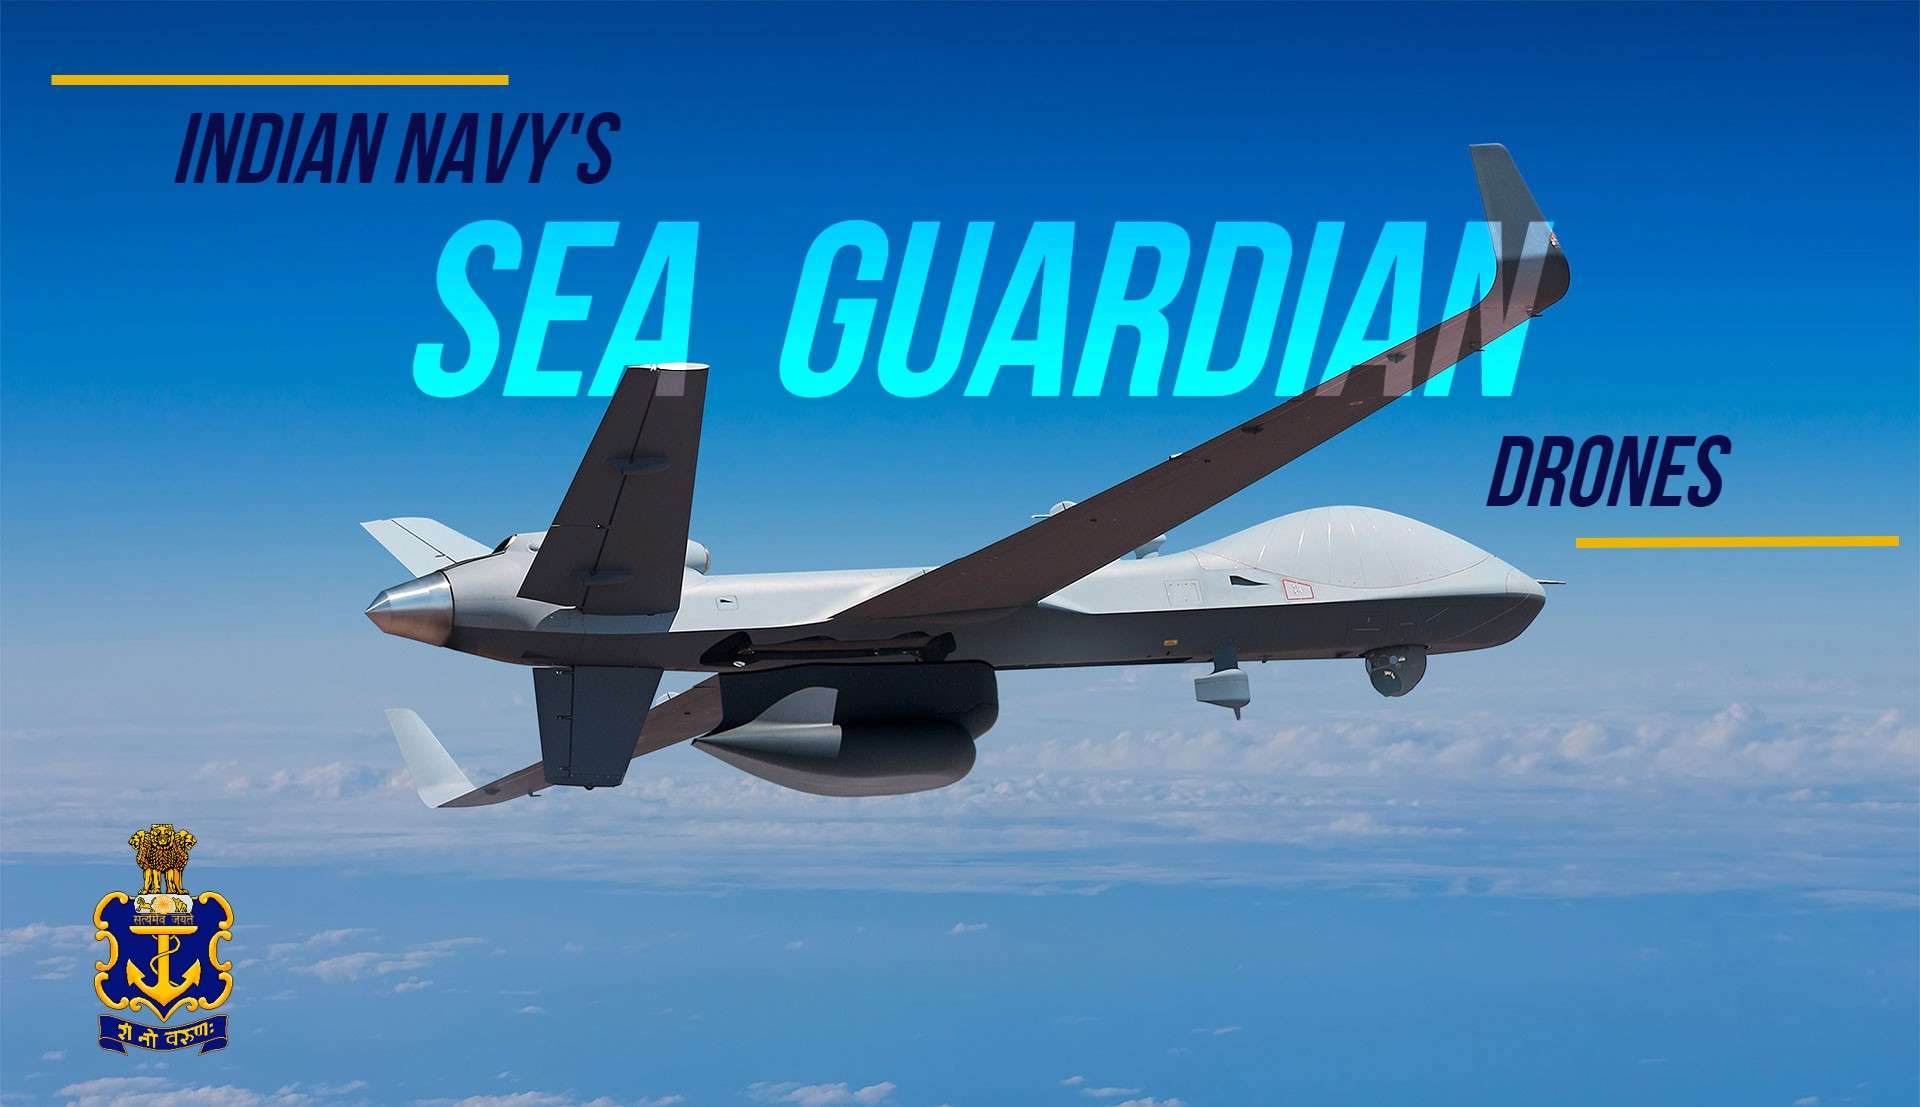 Sea Guardian Drones MQ-9B added to Indian Navy's Arsenal